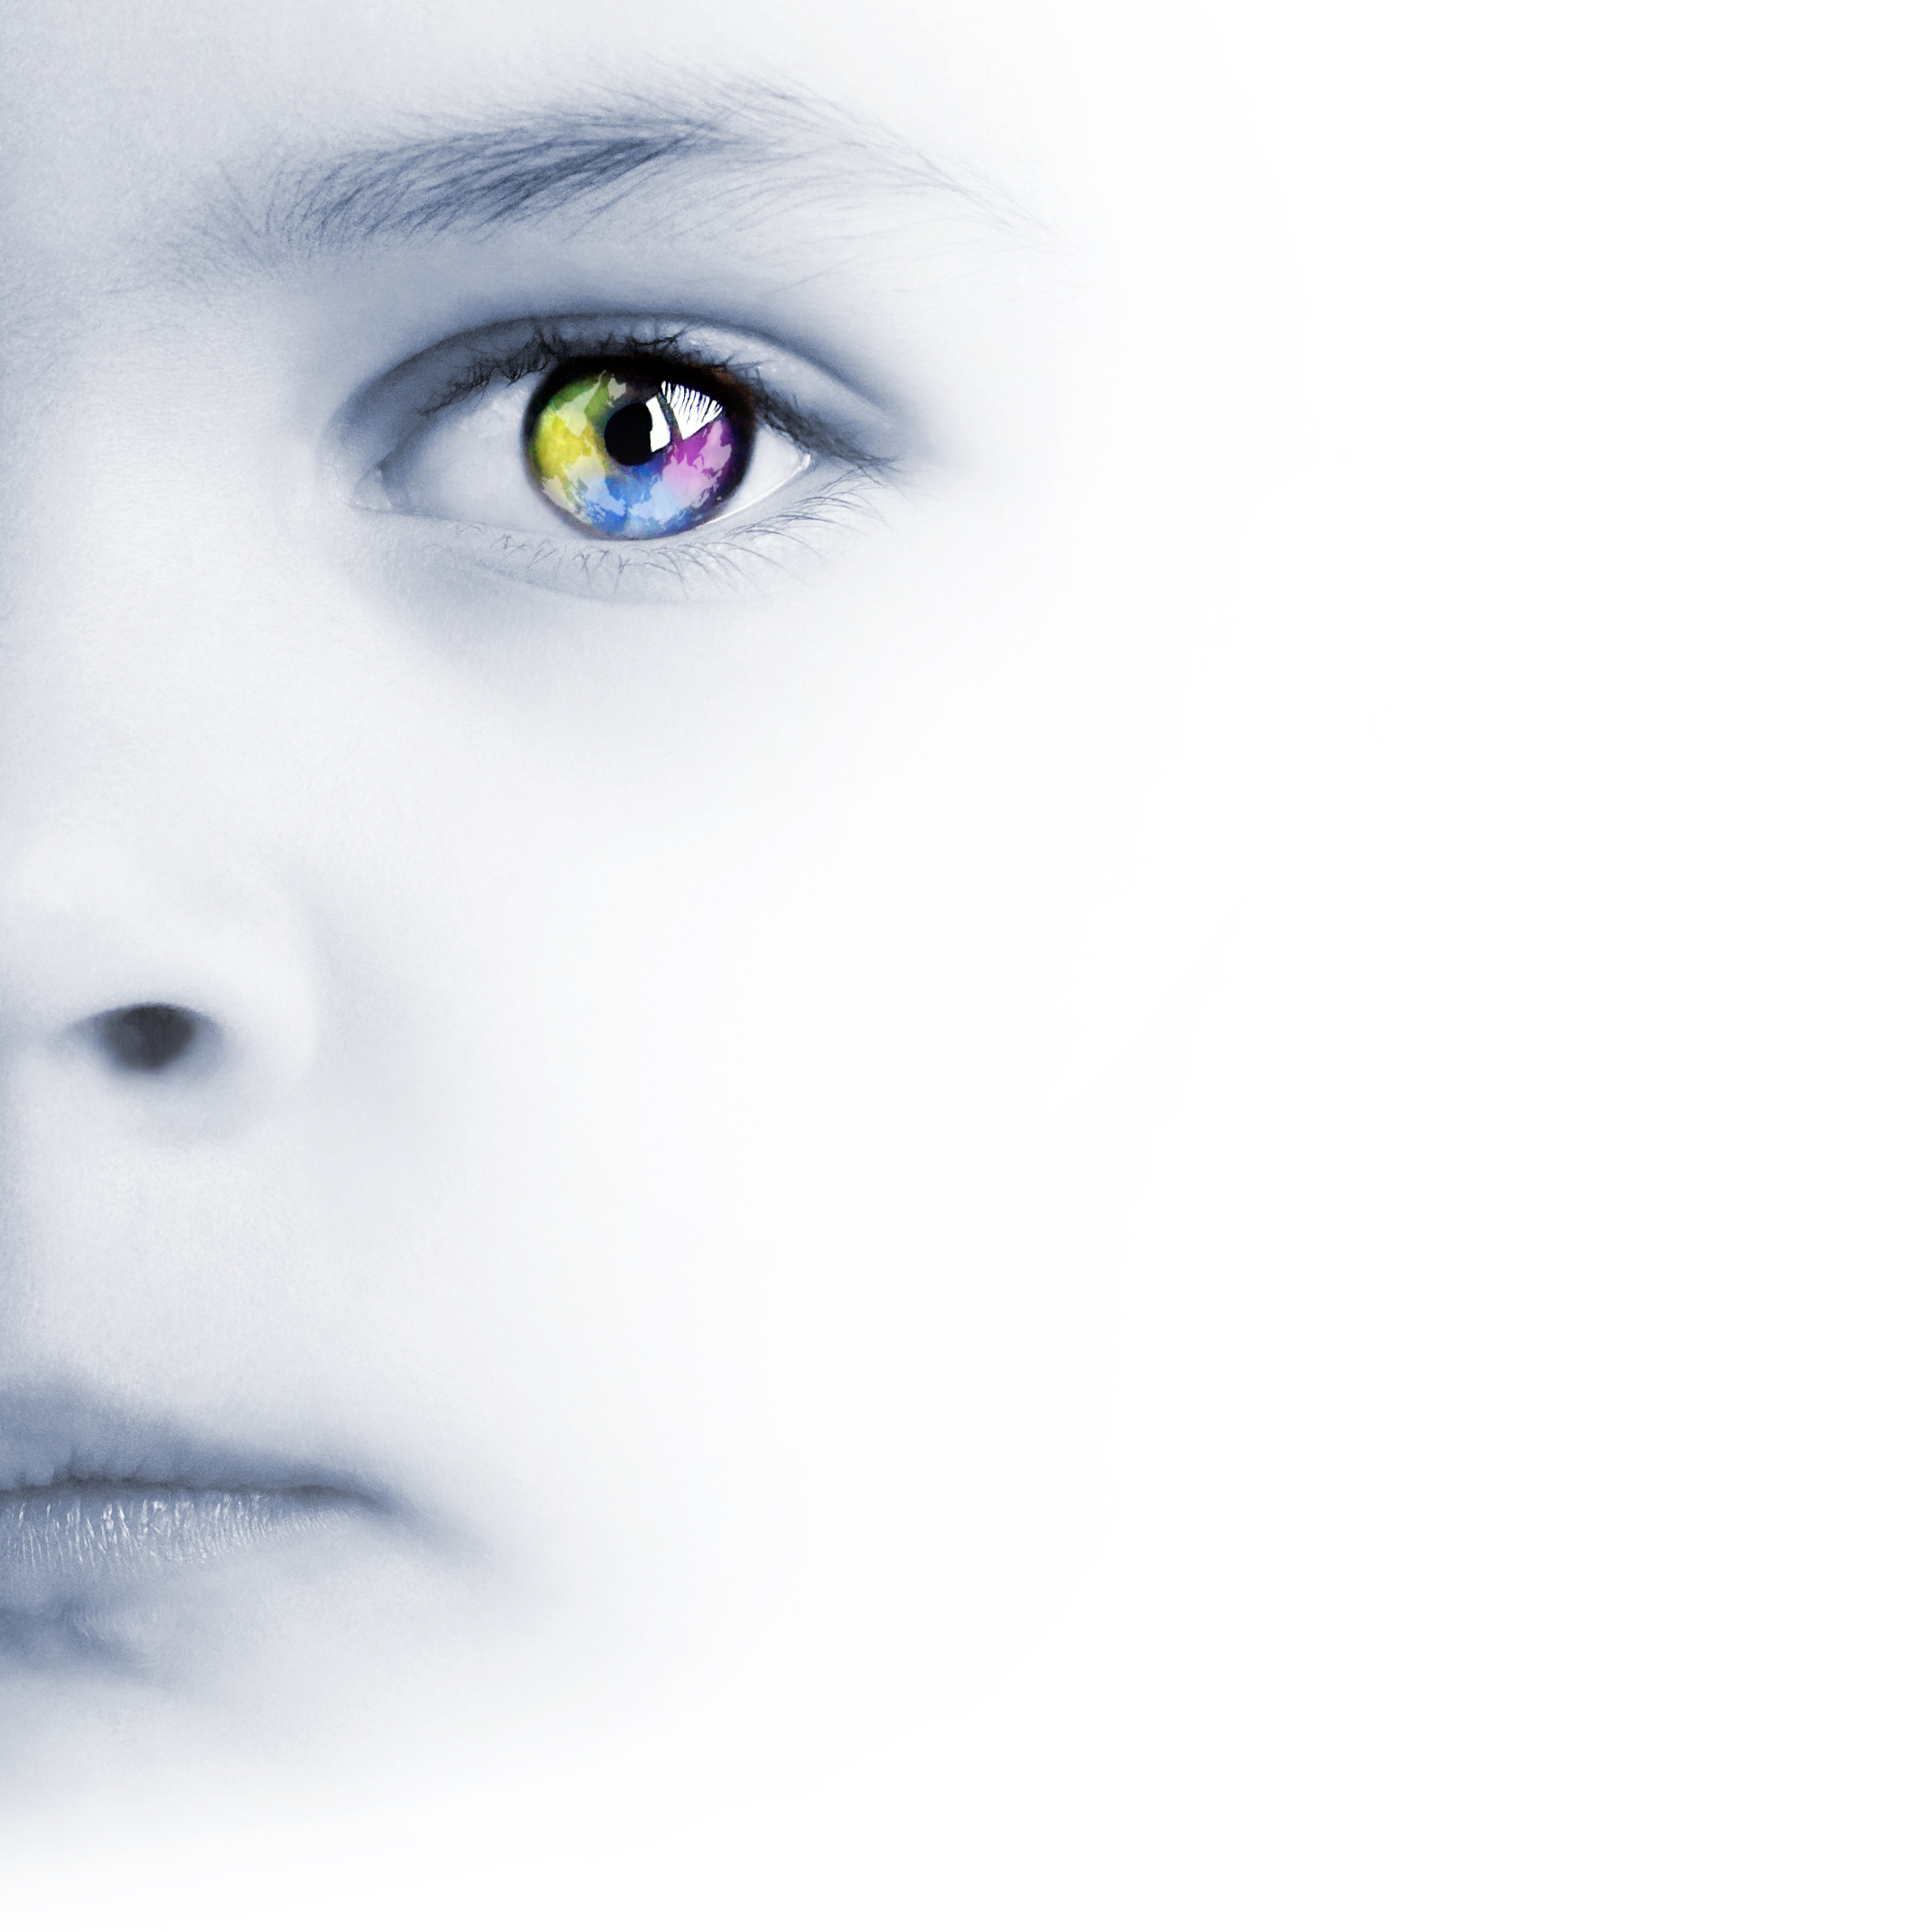 Child's face, colorful eye and map. Photo credit:  Photodune